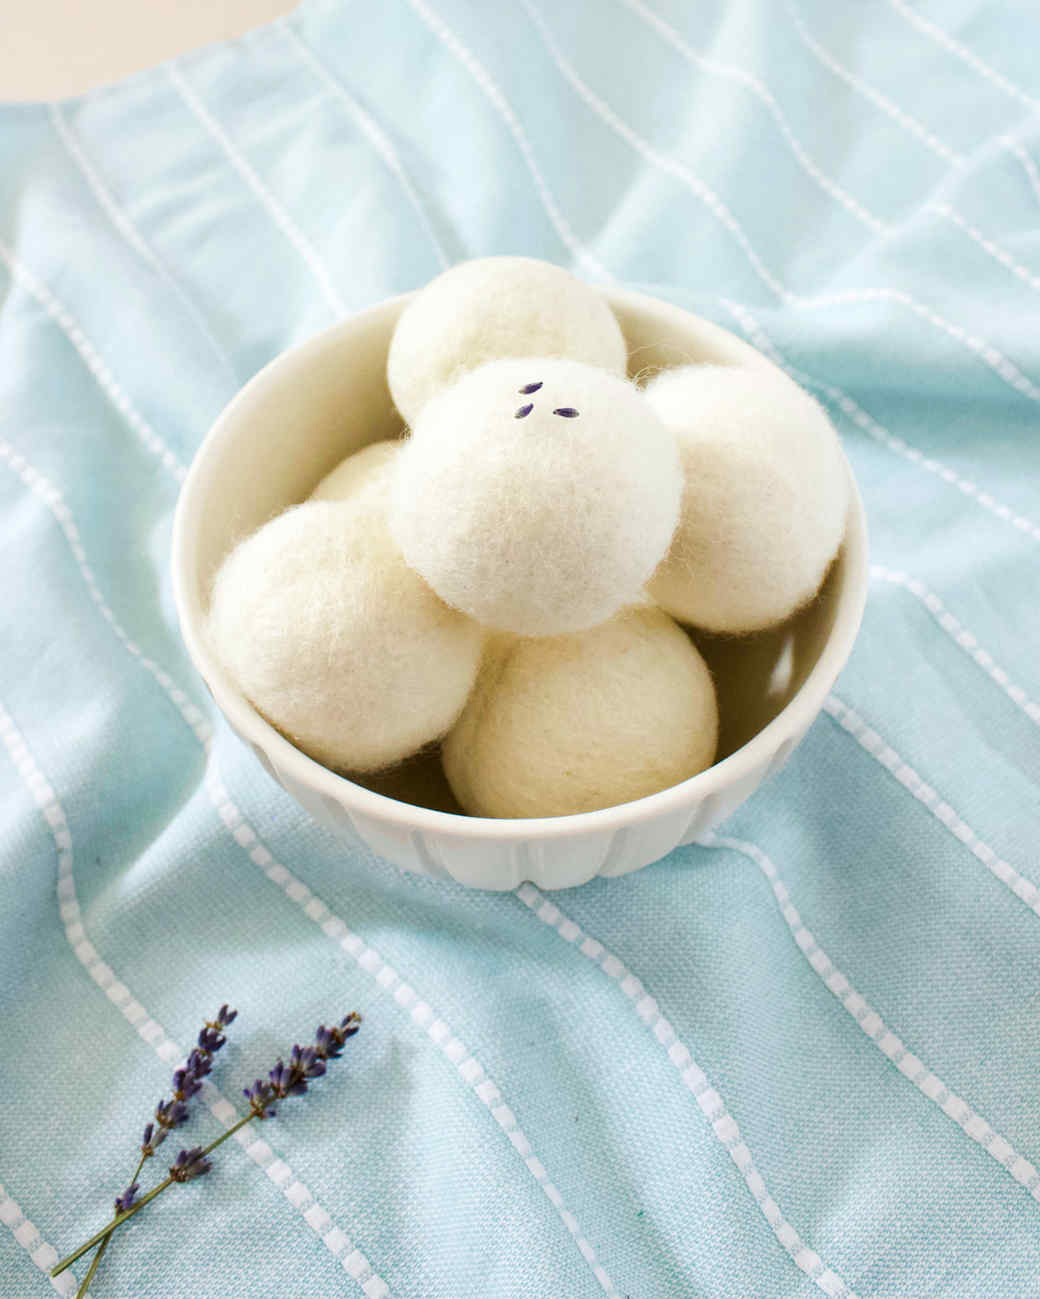 bowl of wool dryer balls and lavender sprigs